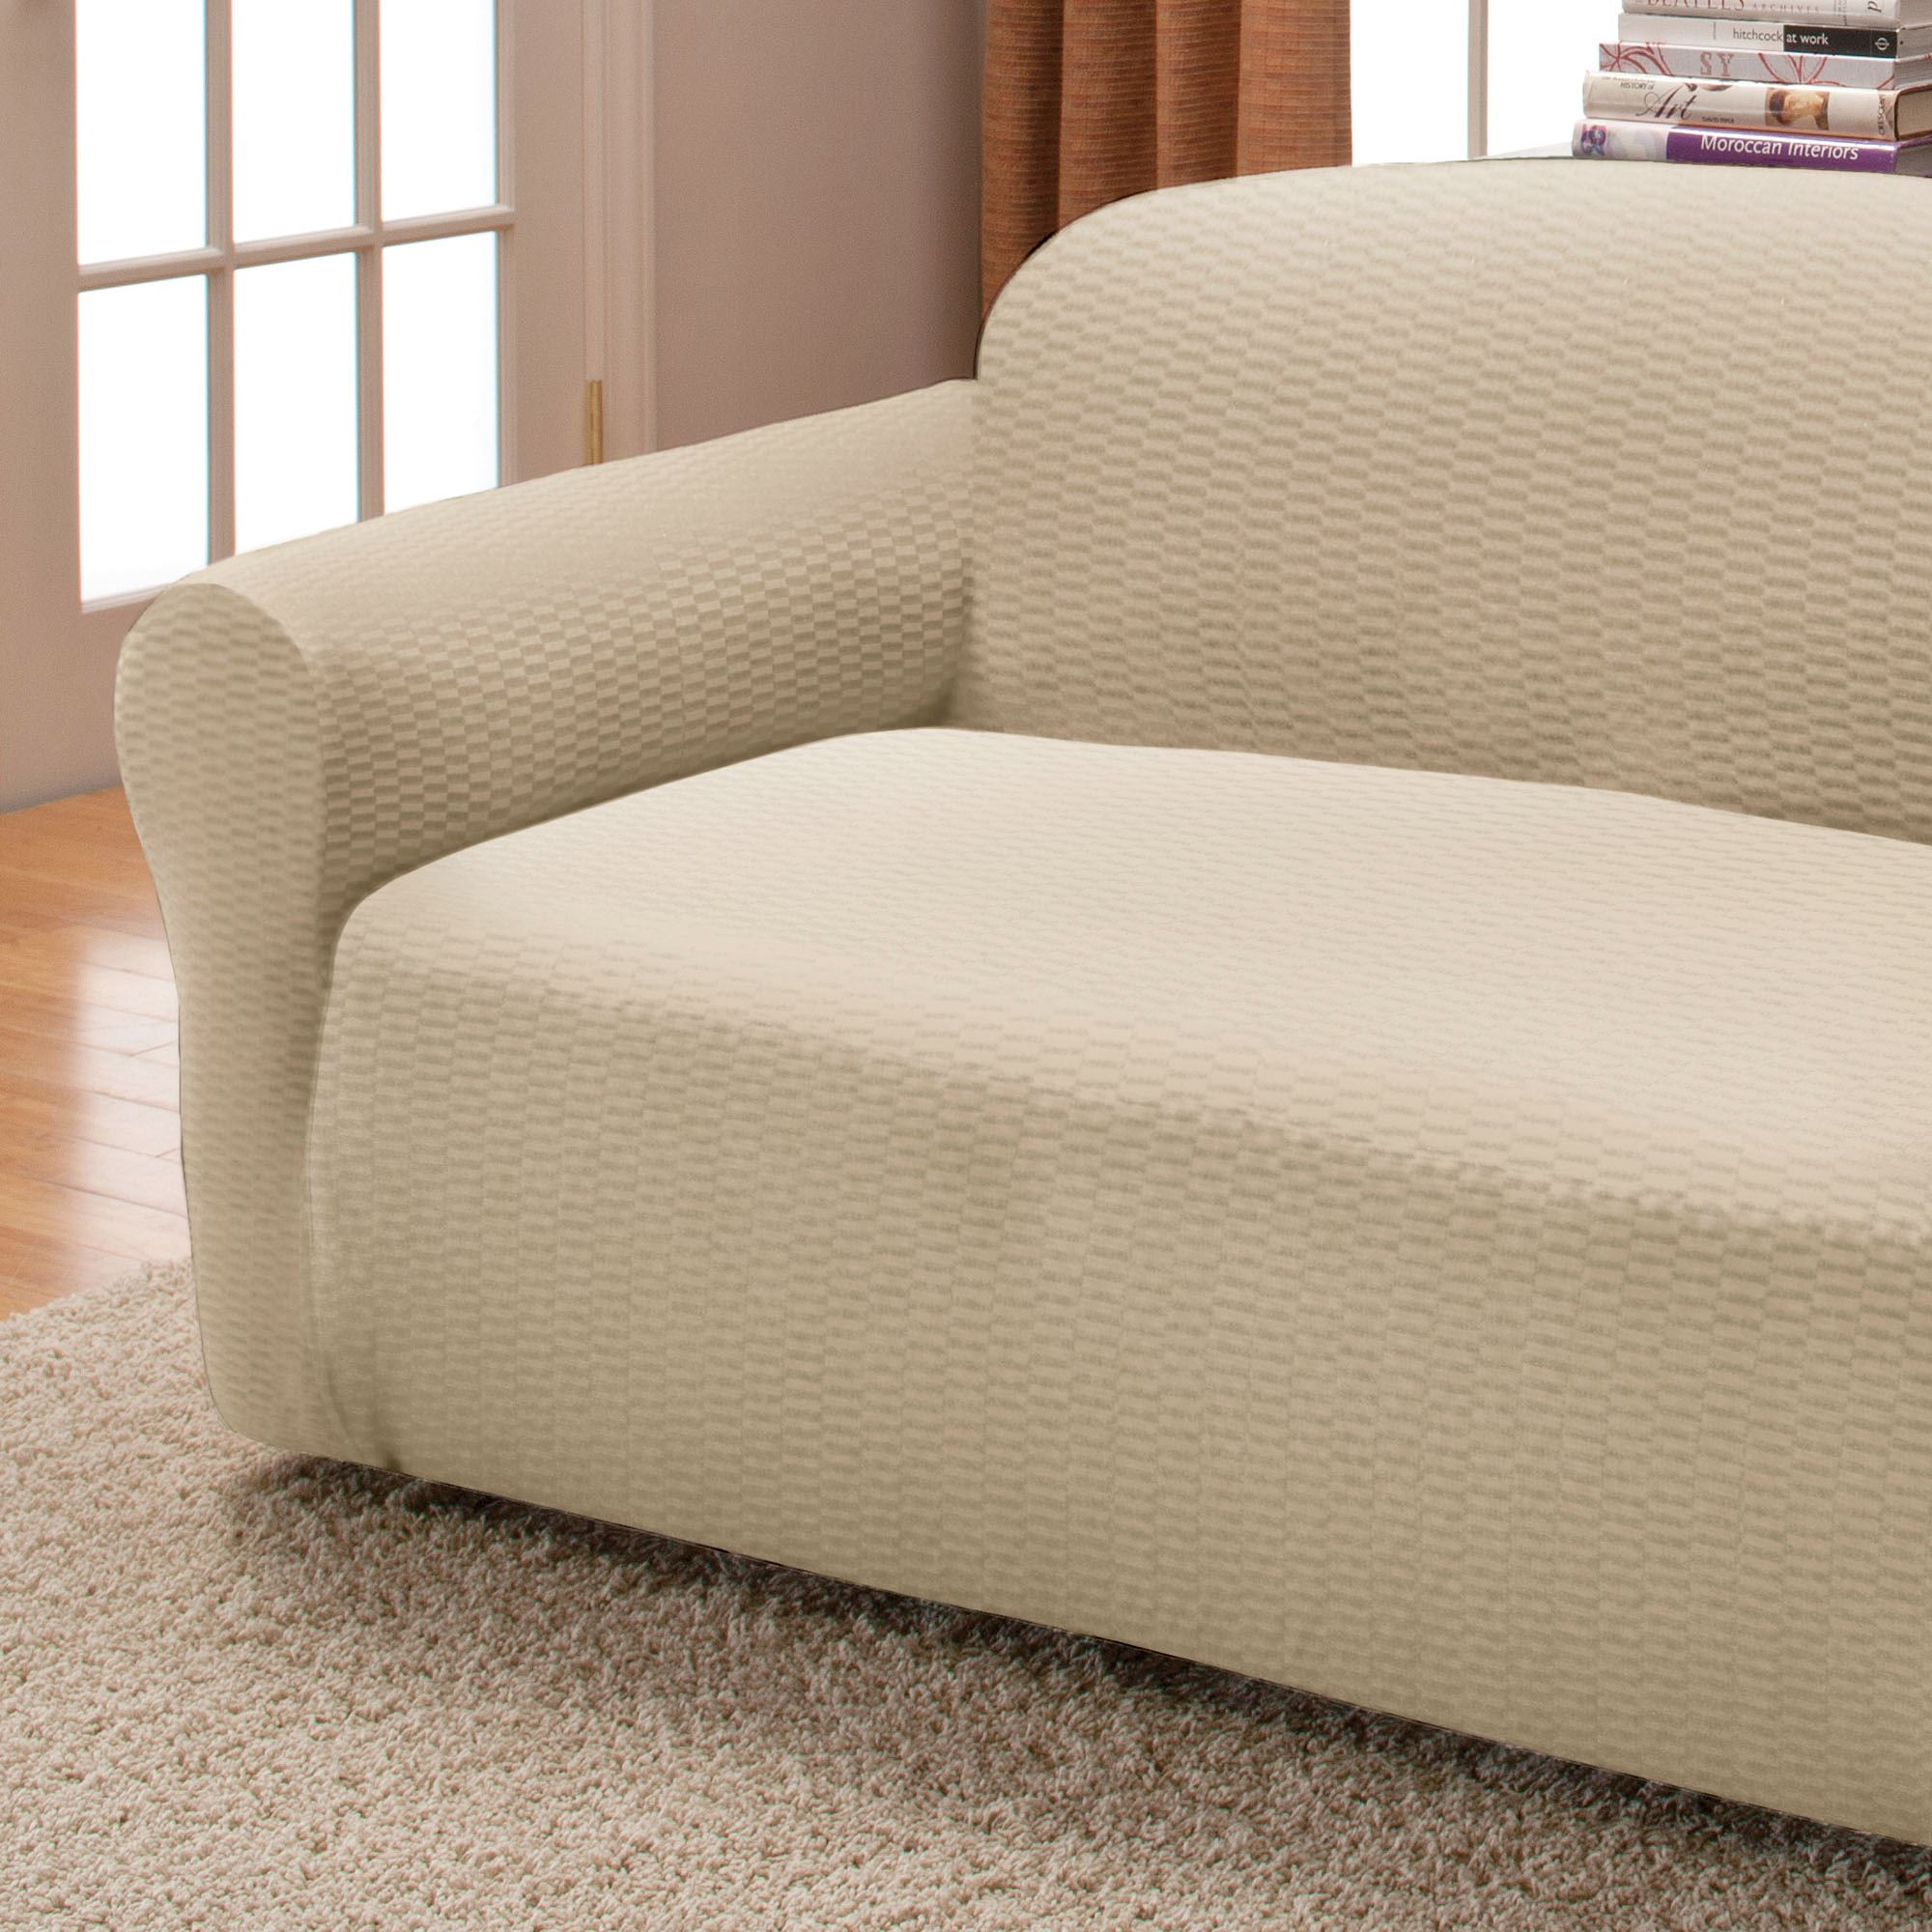 Sofa Slipcovers Raise The Bar Stretch Sofa Slipcovers